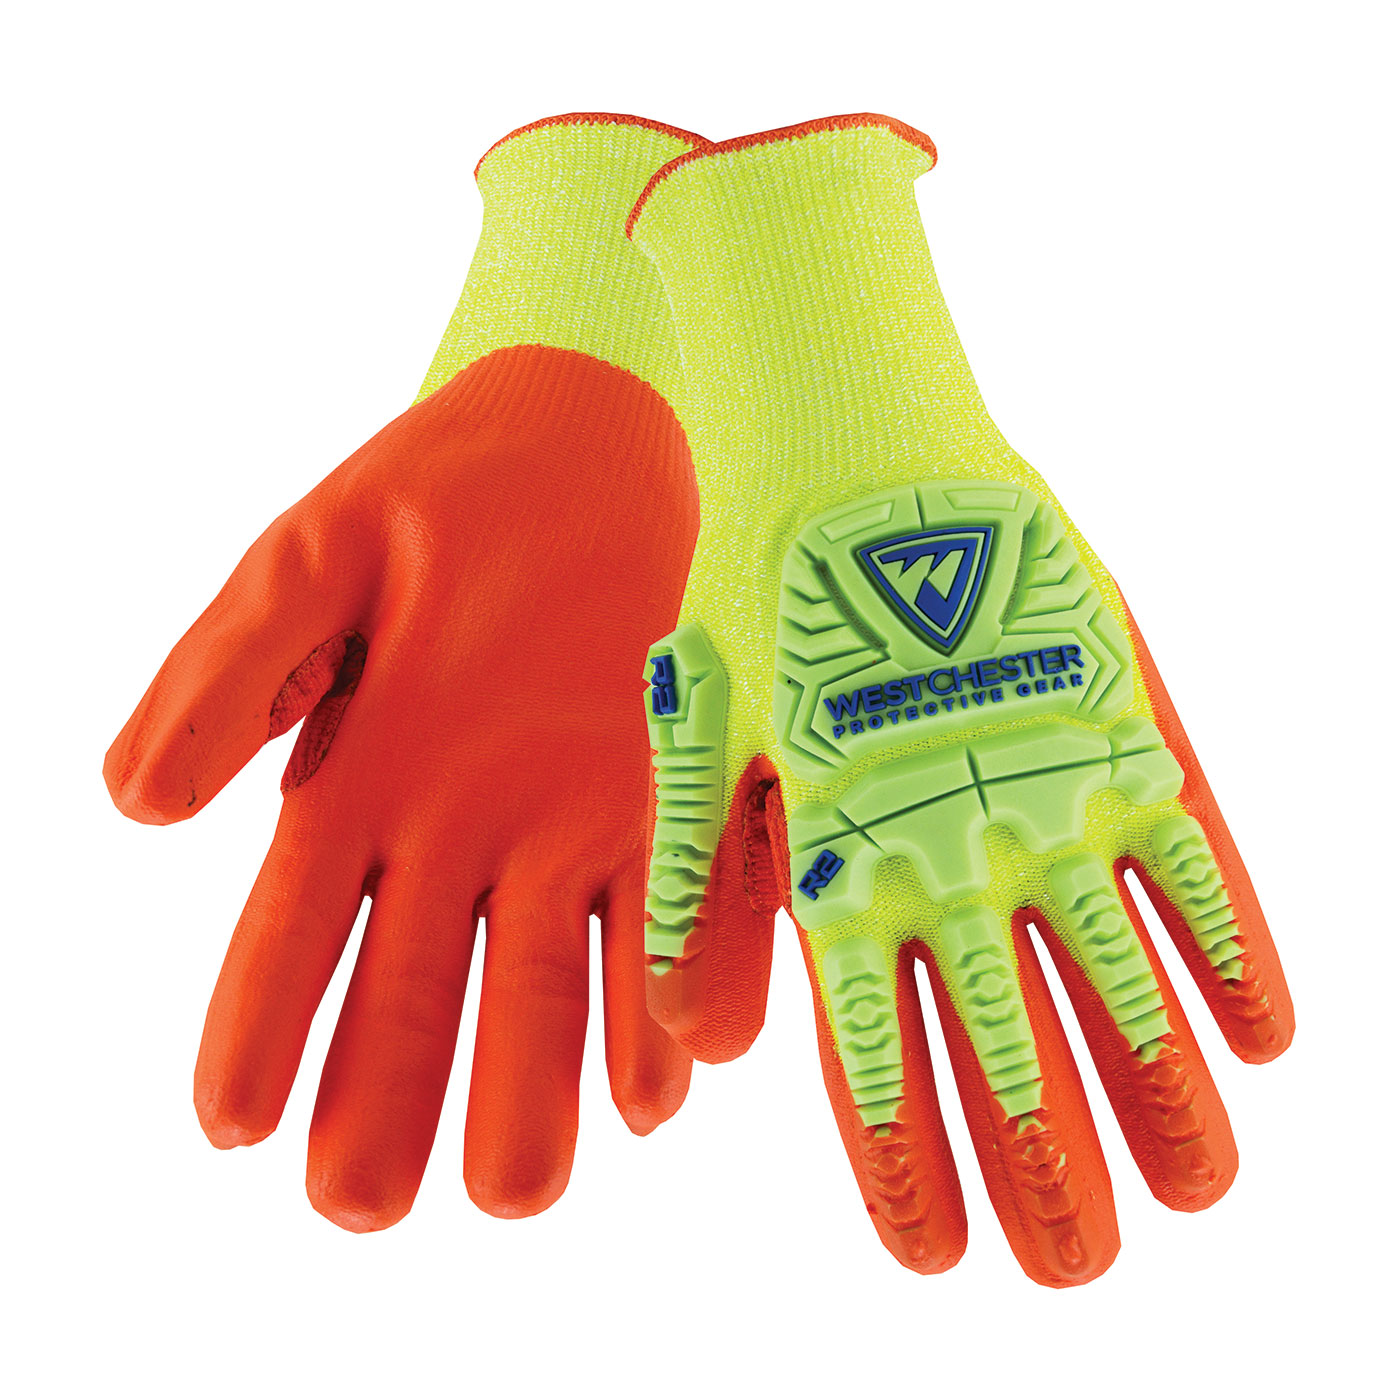 West Chester HVY710HSNFB 2X HVY710HSNFB R2™ High-Visibility Seamless Knit HPPE Blended Gloves, 2X-Large, HPPE, High-Visibility Yellow/Orange, Rib Knit Cuff